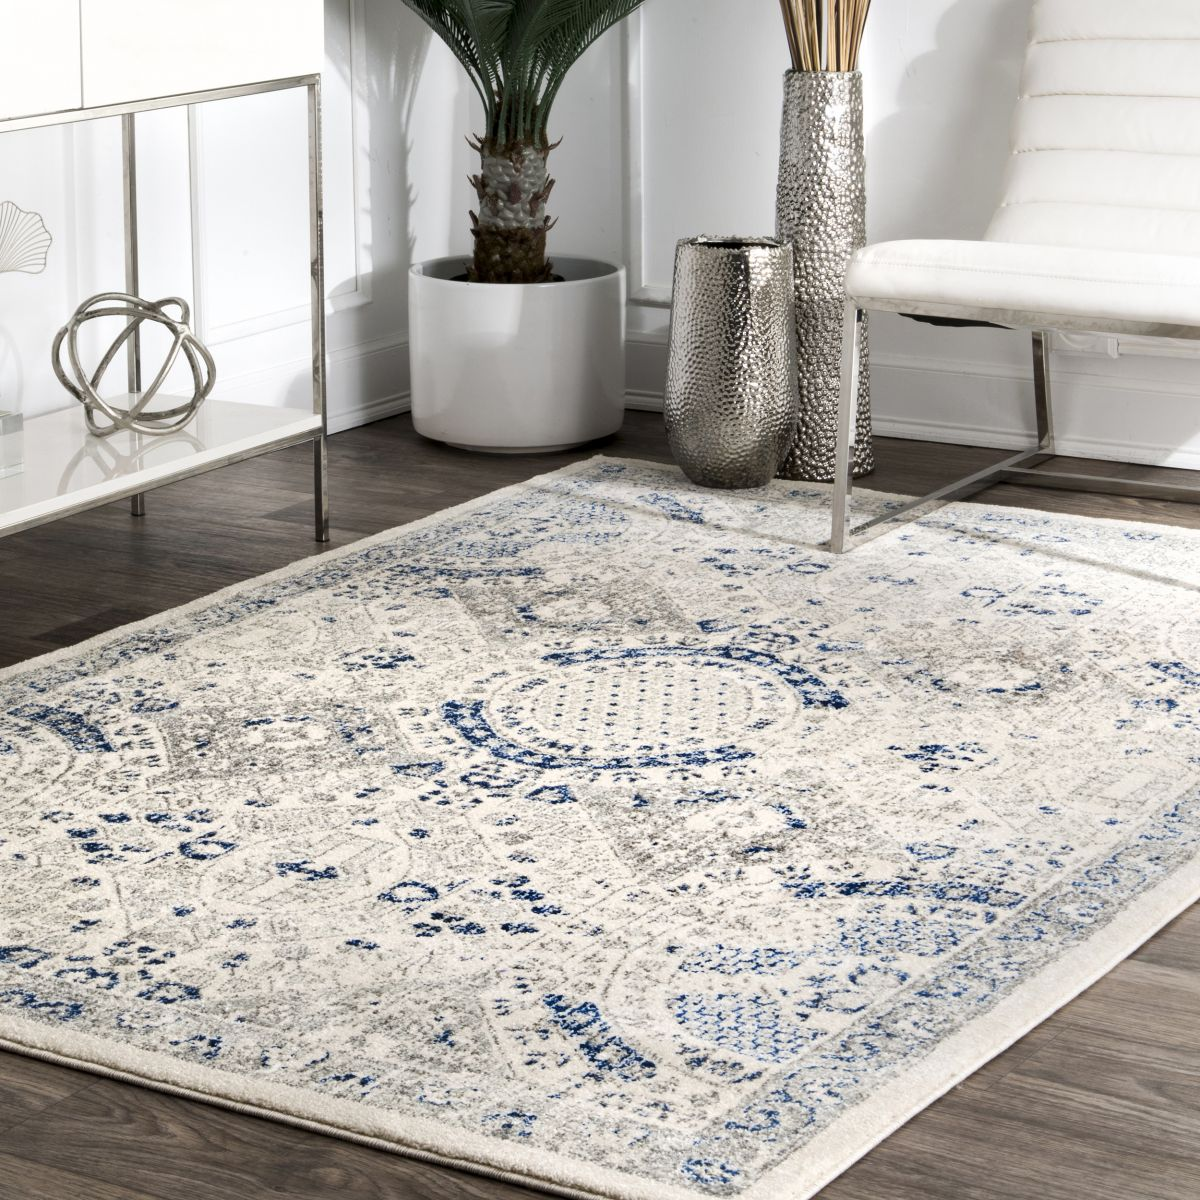 Blue Honeycomb Labyrinth Patterned Rug